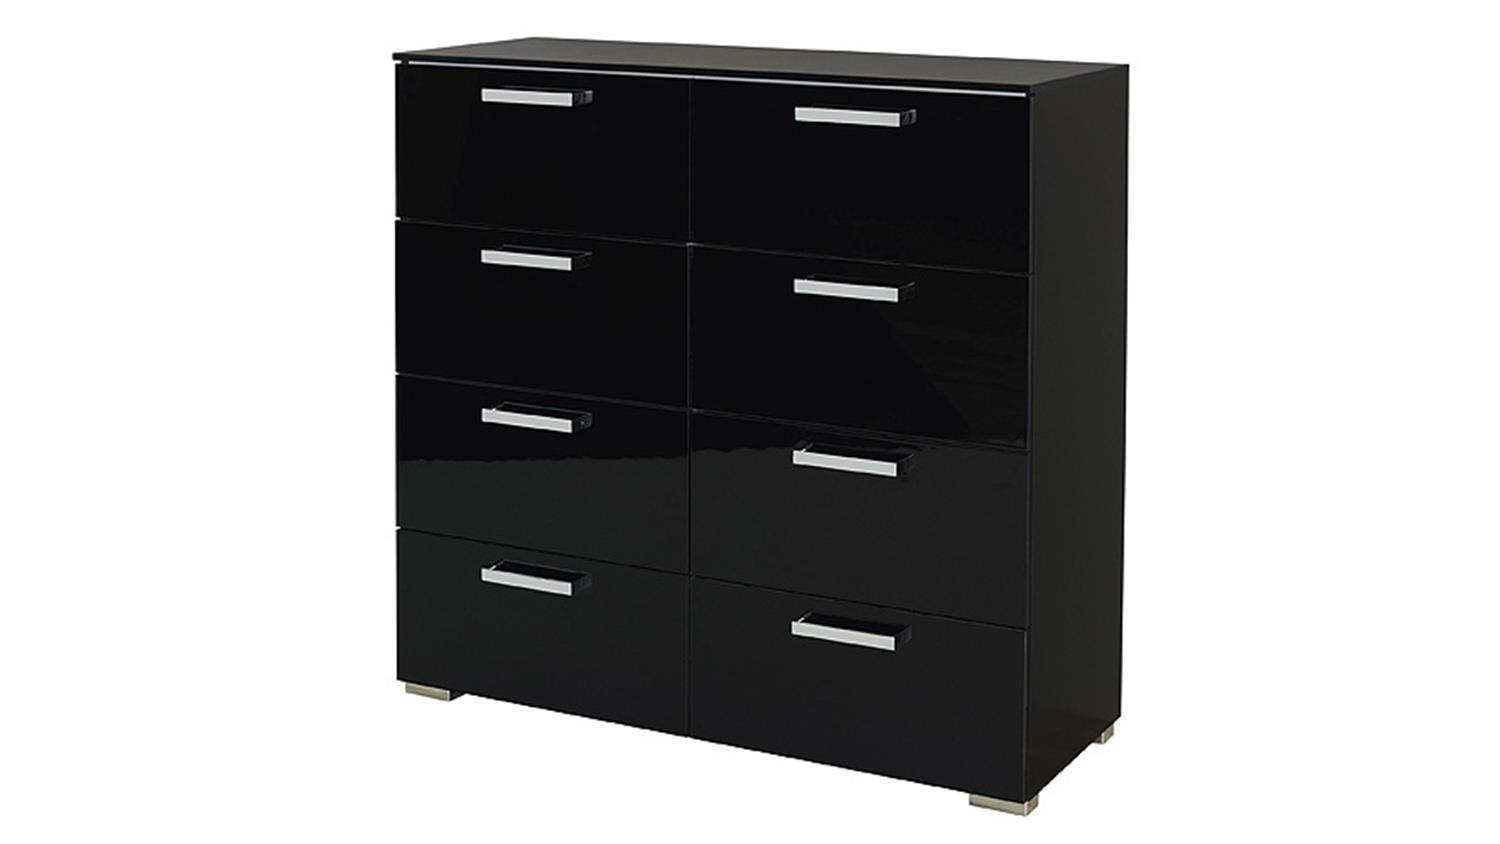 kommode calero vi schwarz front hochglanz. Black Bedroom Furniture Sets. Home Design Ideas